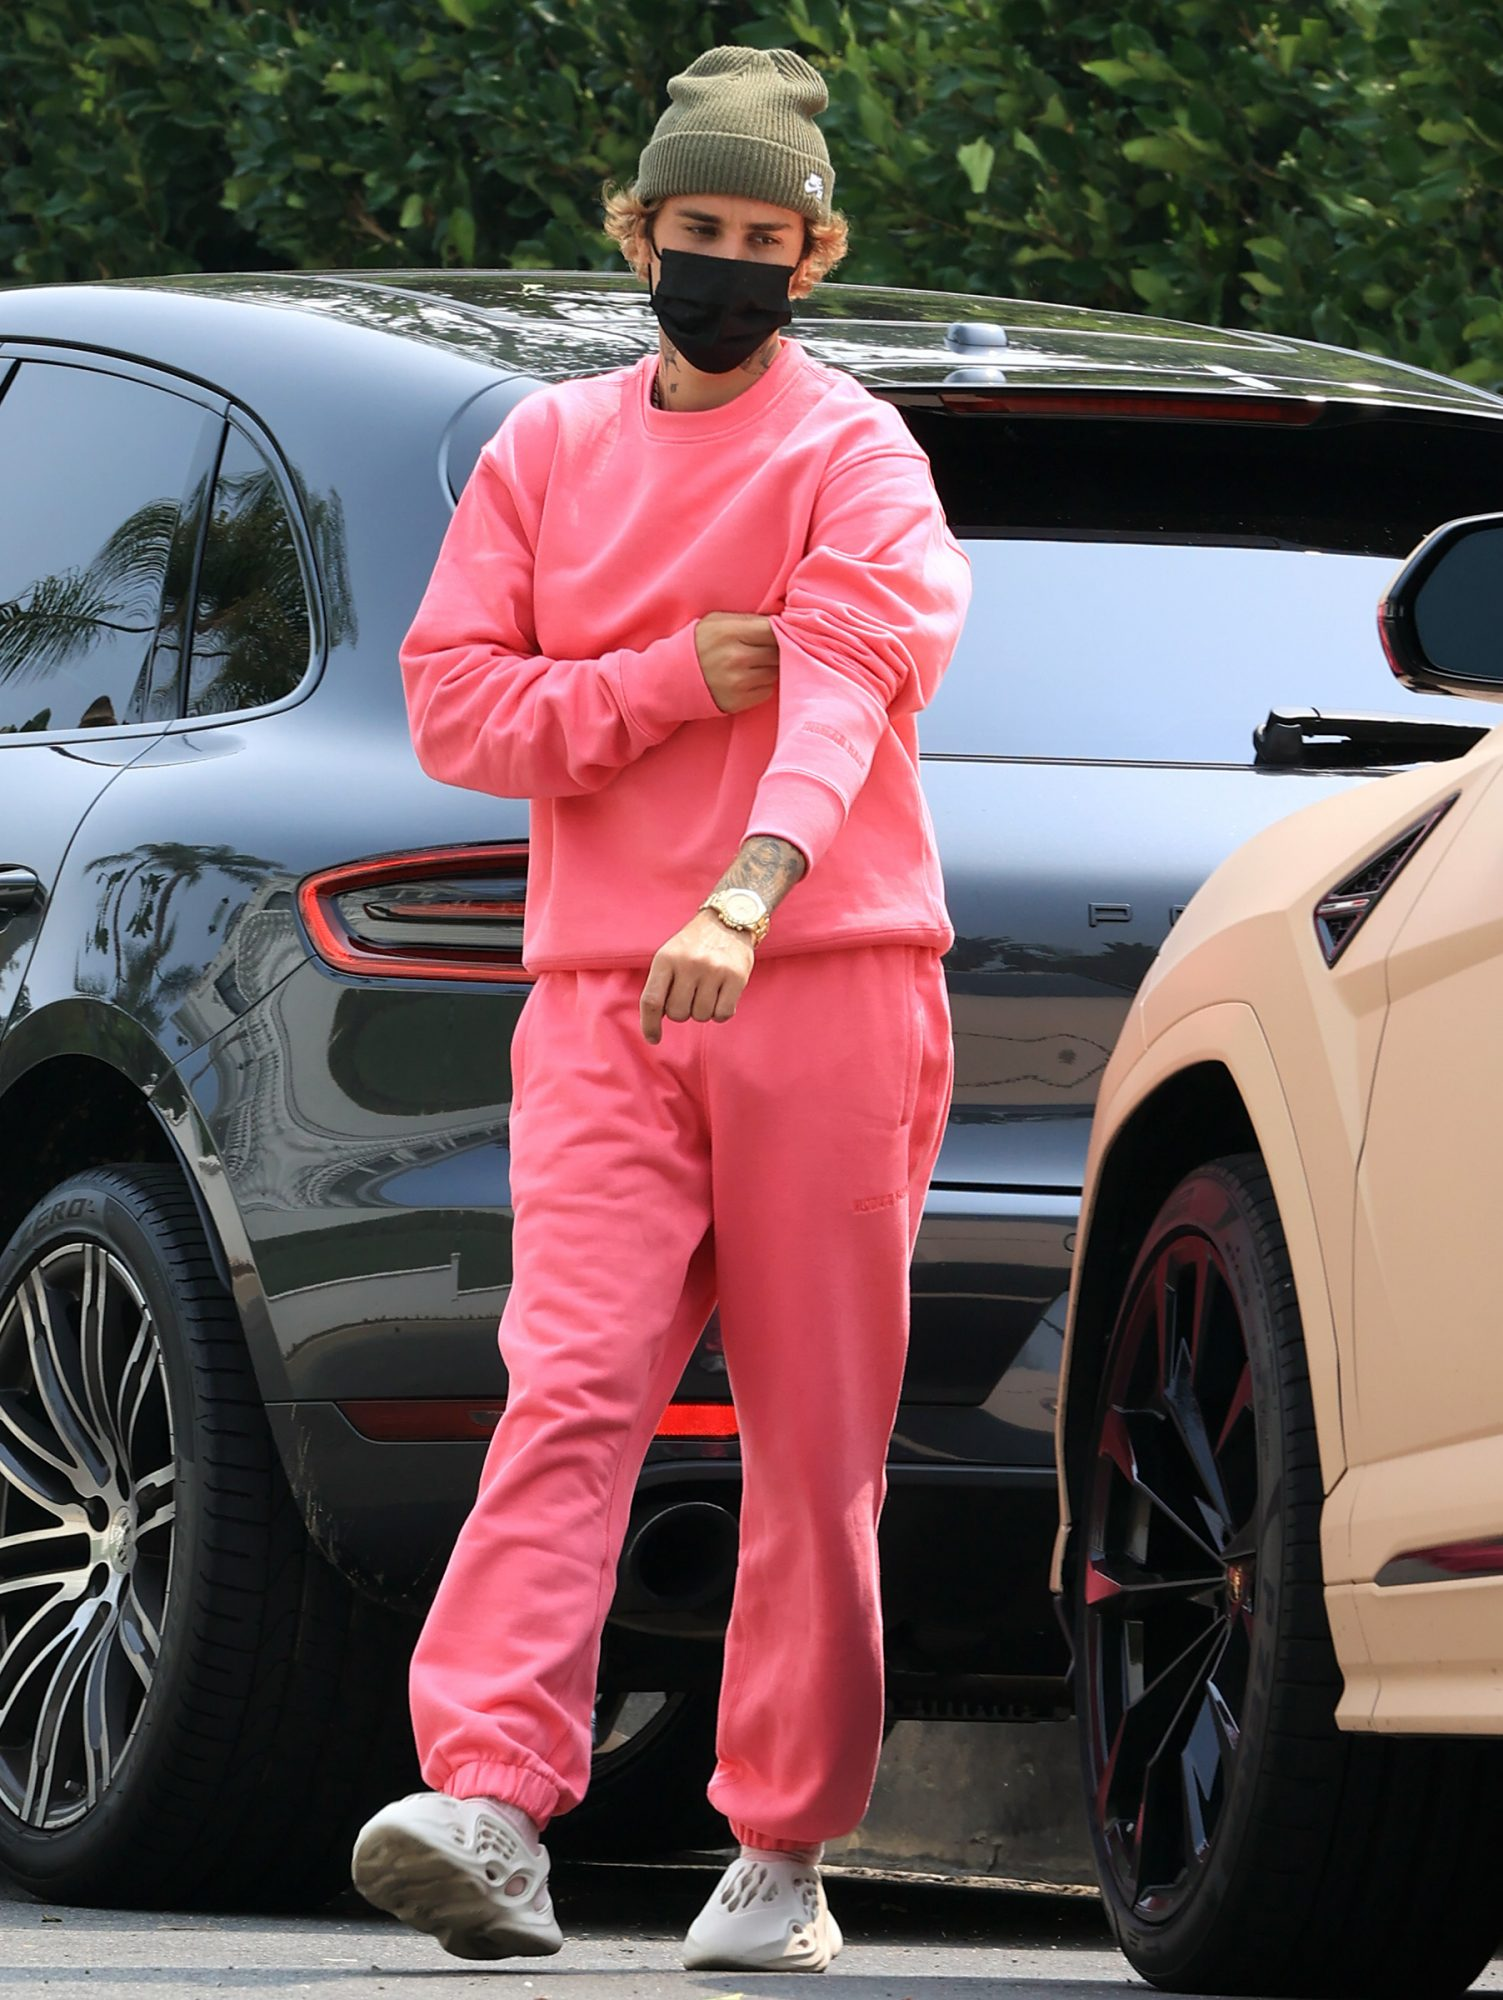 Justin Bieber rocks a hot pink outfit during outing with wife Hailey